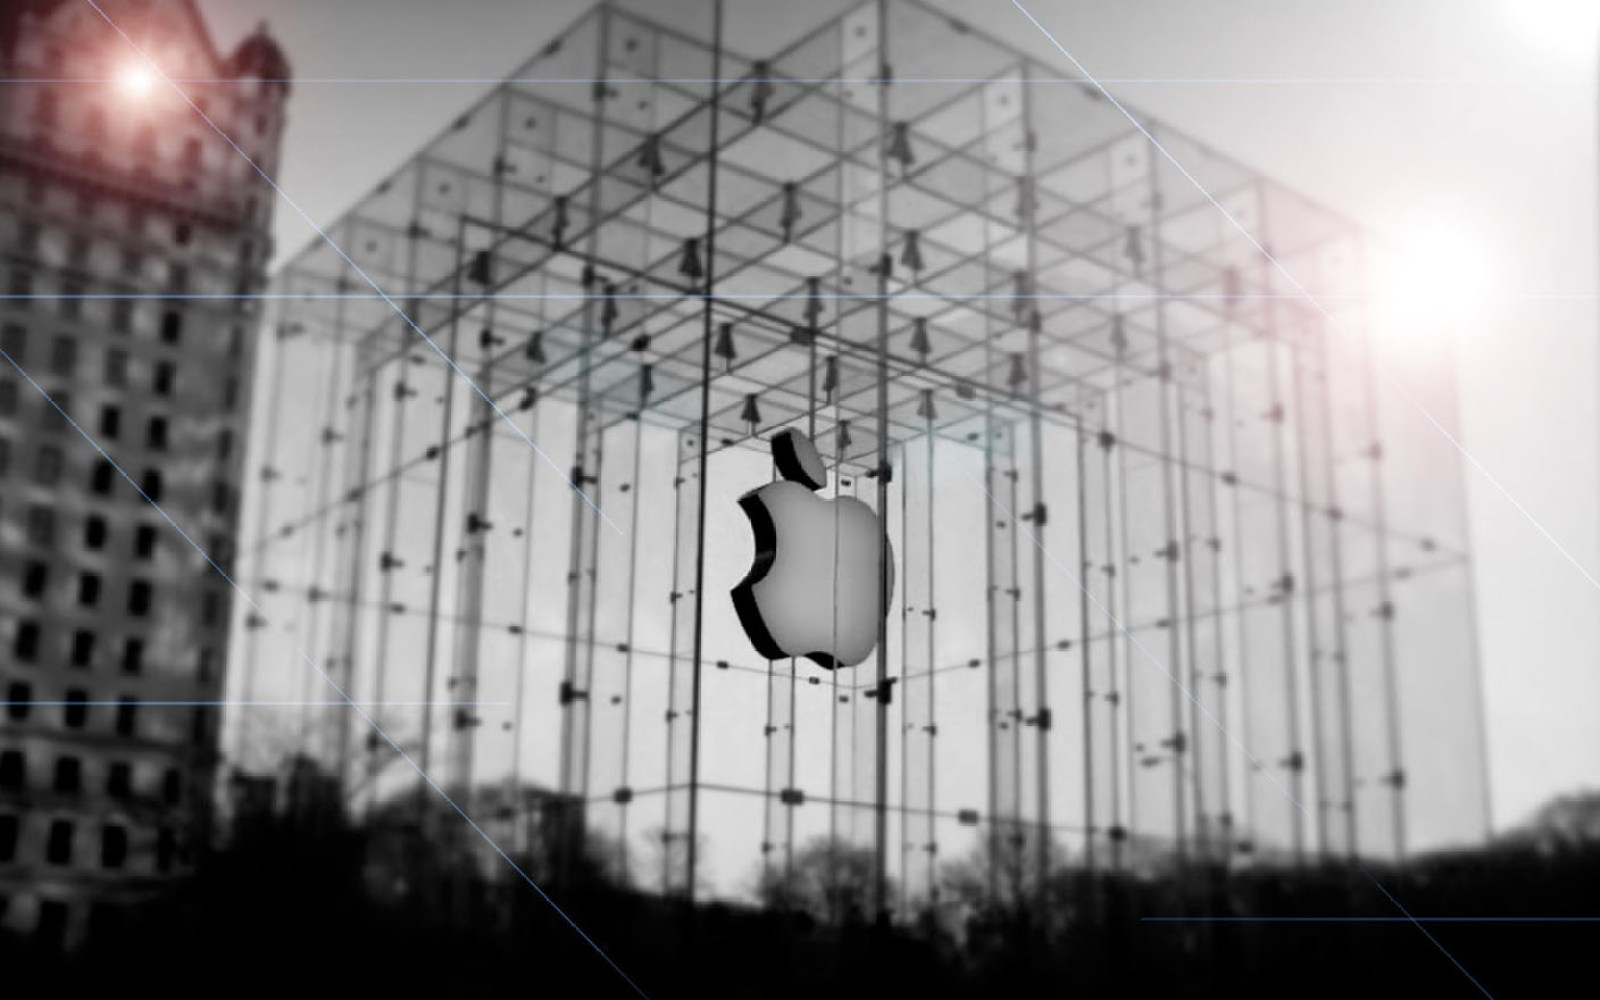 1500 senior execs name Apple most innovative company in the world 9th year running